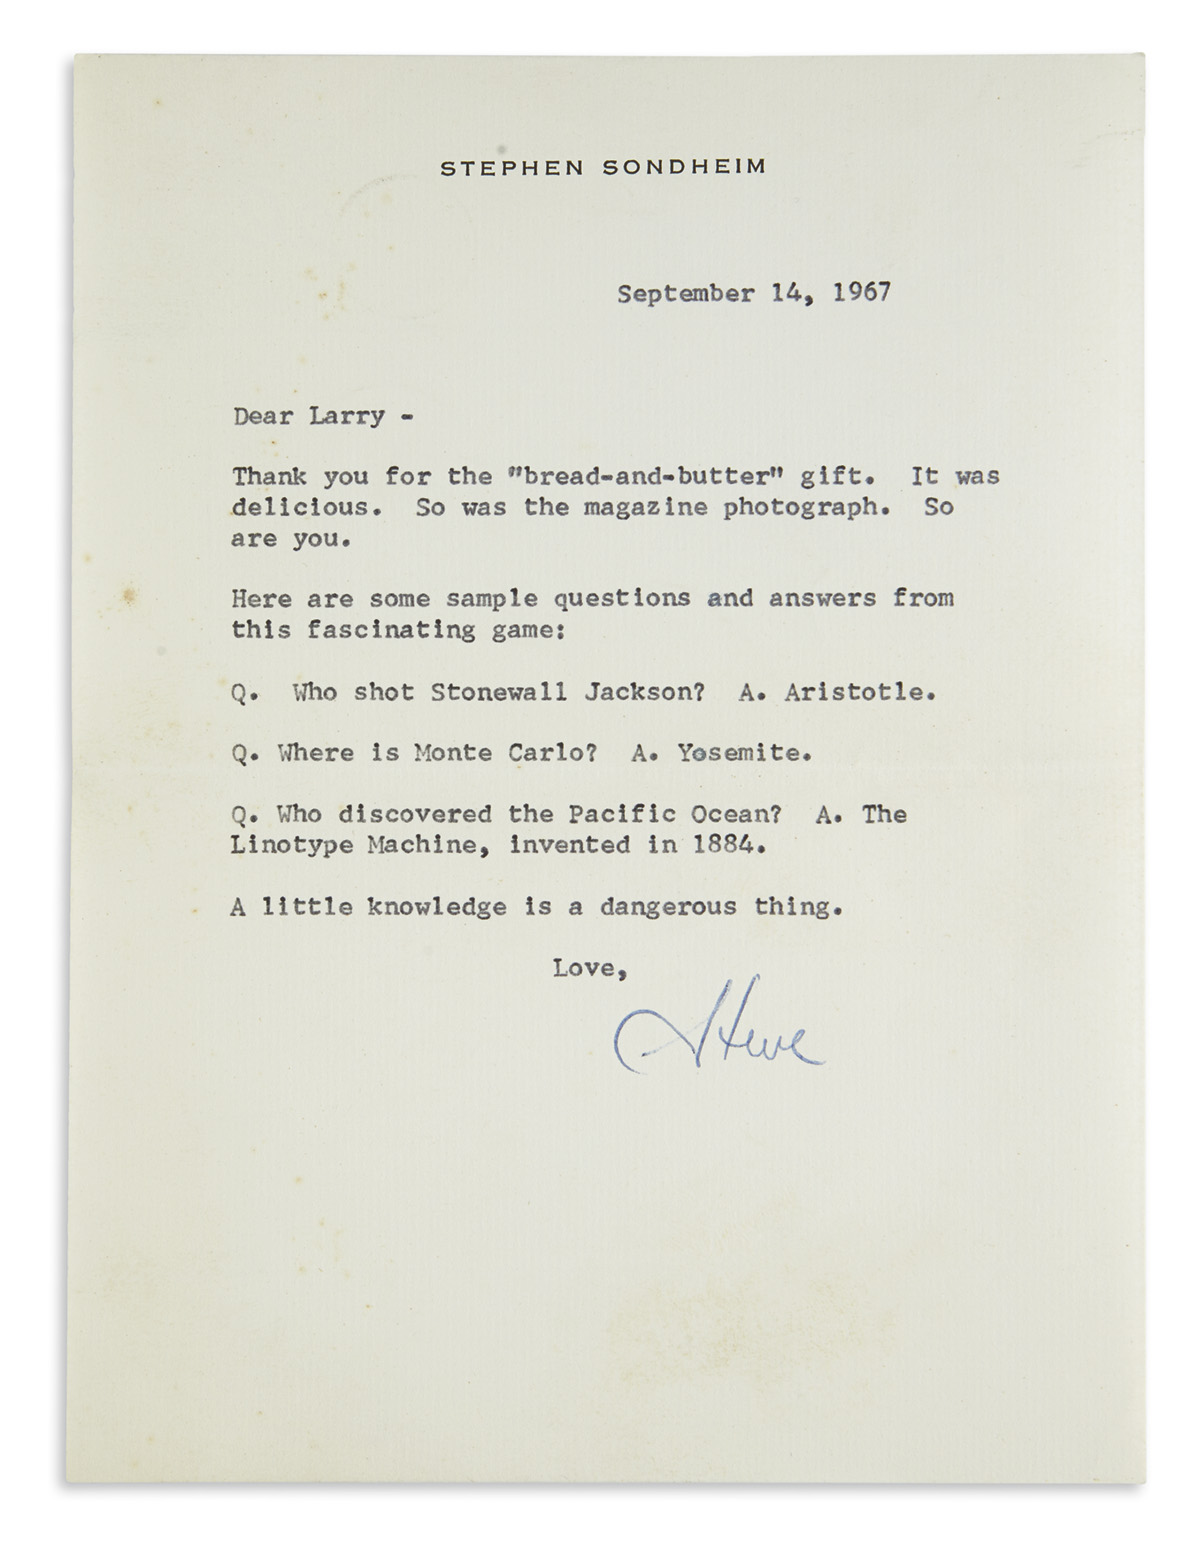 SONDHEIM, STEPHEN. Archive of 77 items Signed, or Signed and Inscribed, to his friend Larry Miller,